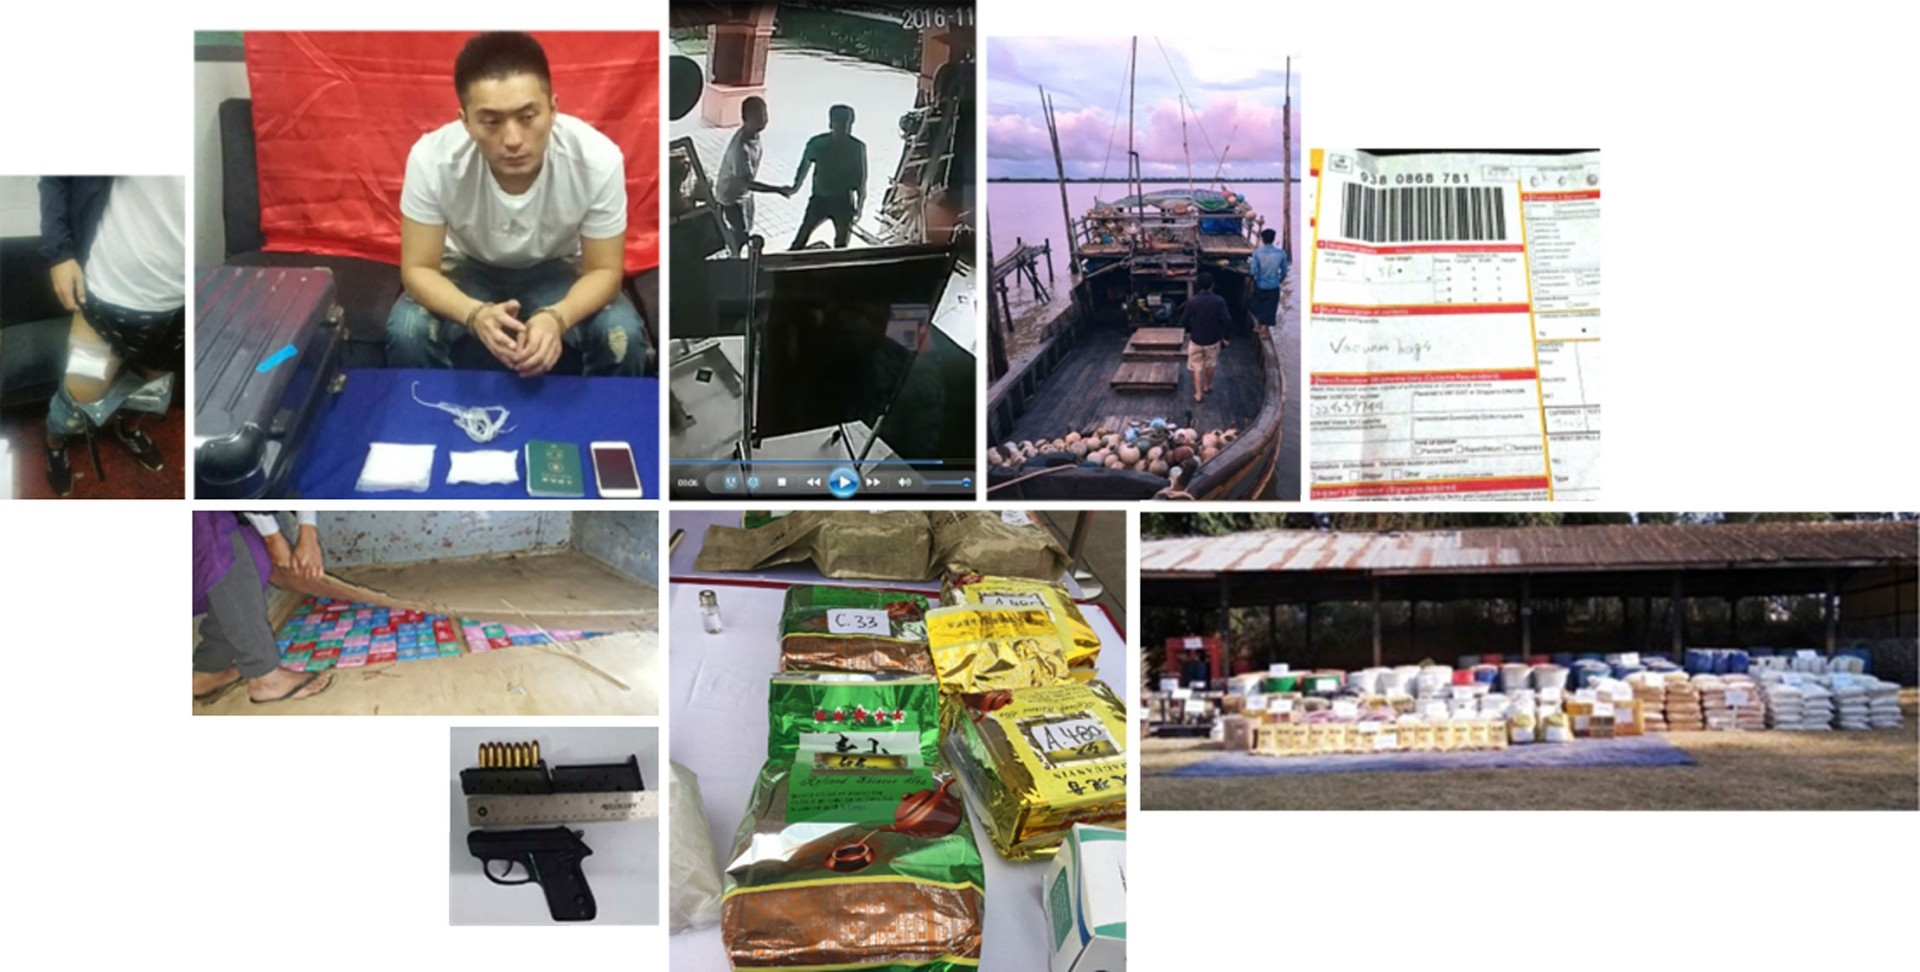 The tracking and arrest of Cai Jeng Ze (top row) in Yangon airport with ketamine strapped to his body led to the seizure of tonnes of drugs as well as weapons. Despite the arrest, police say the cartel continues to distribute meth and heroin. The starting point for the drug operation is Myanmar's Shan State, where the drugs are produced in sprawling facilities. - Reuters